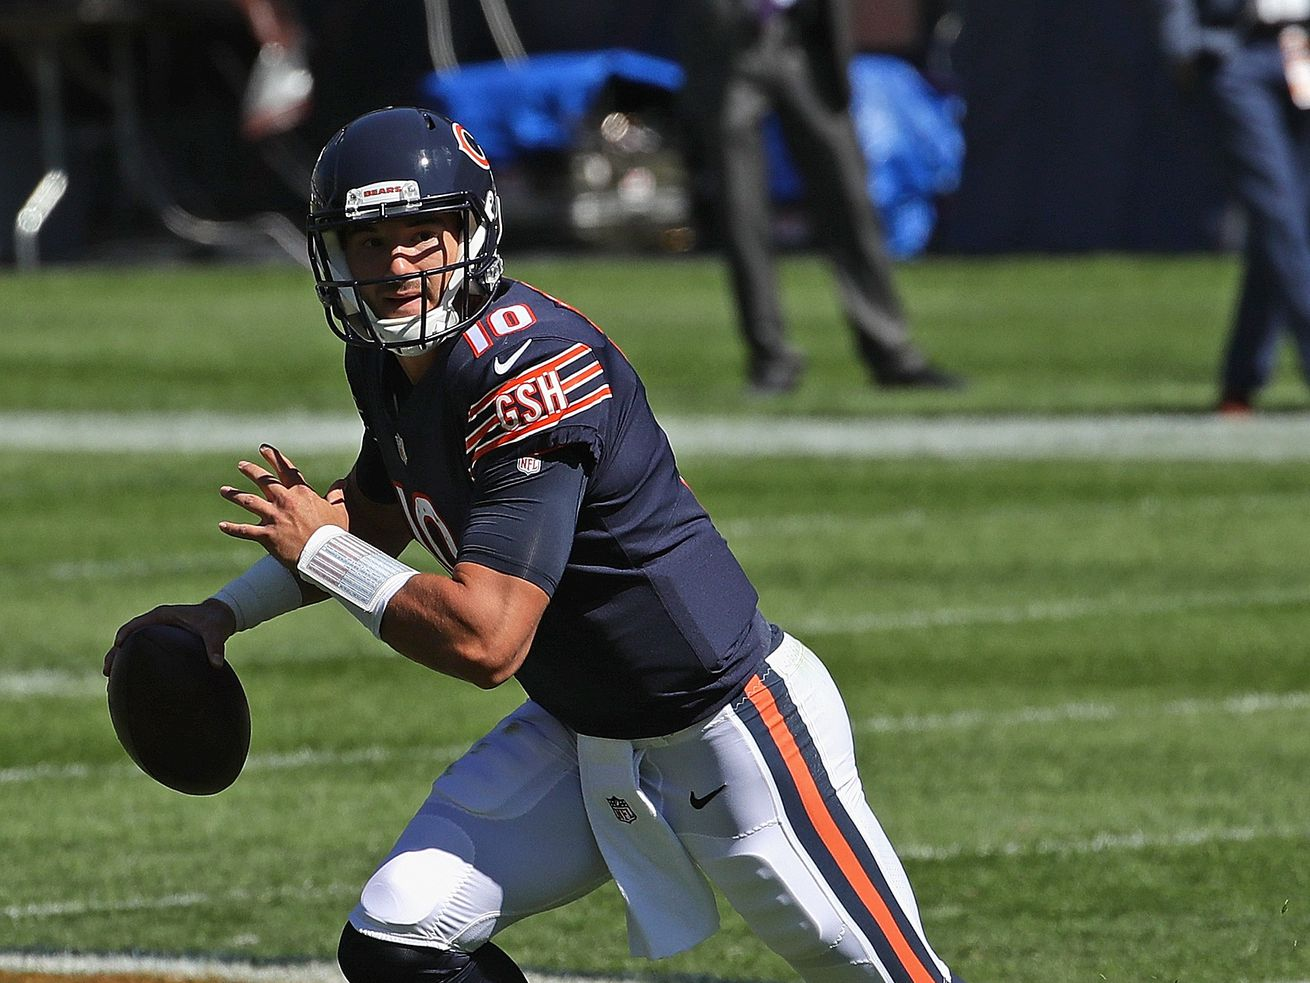 Instead of a giant leap, Mitch Trubisky still takes a small step